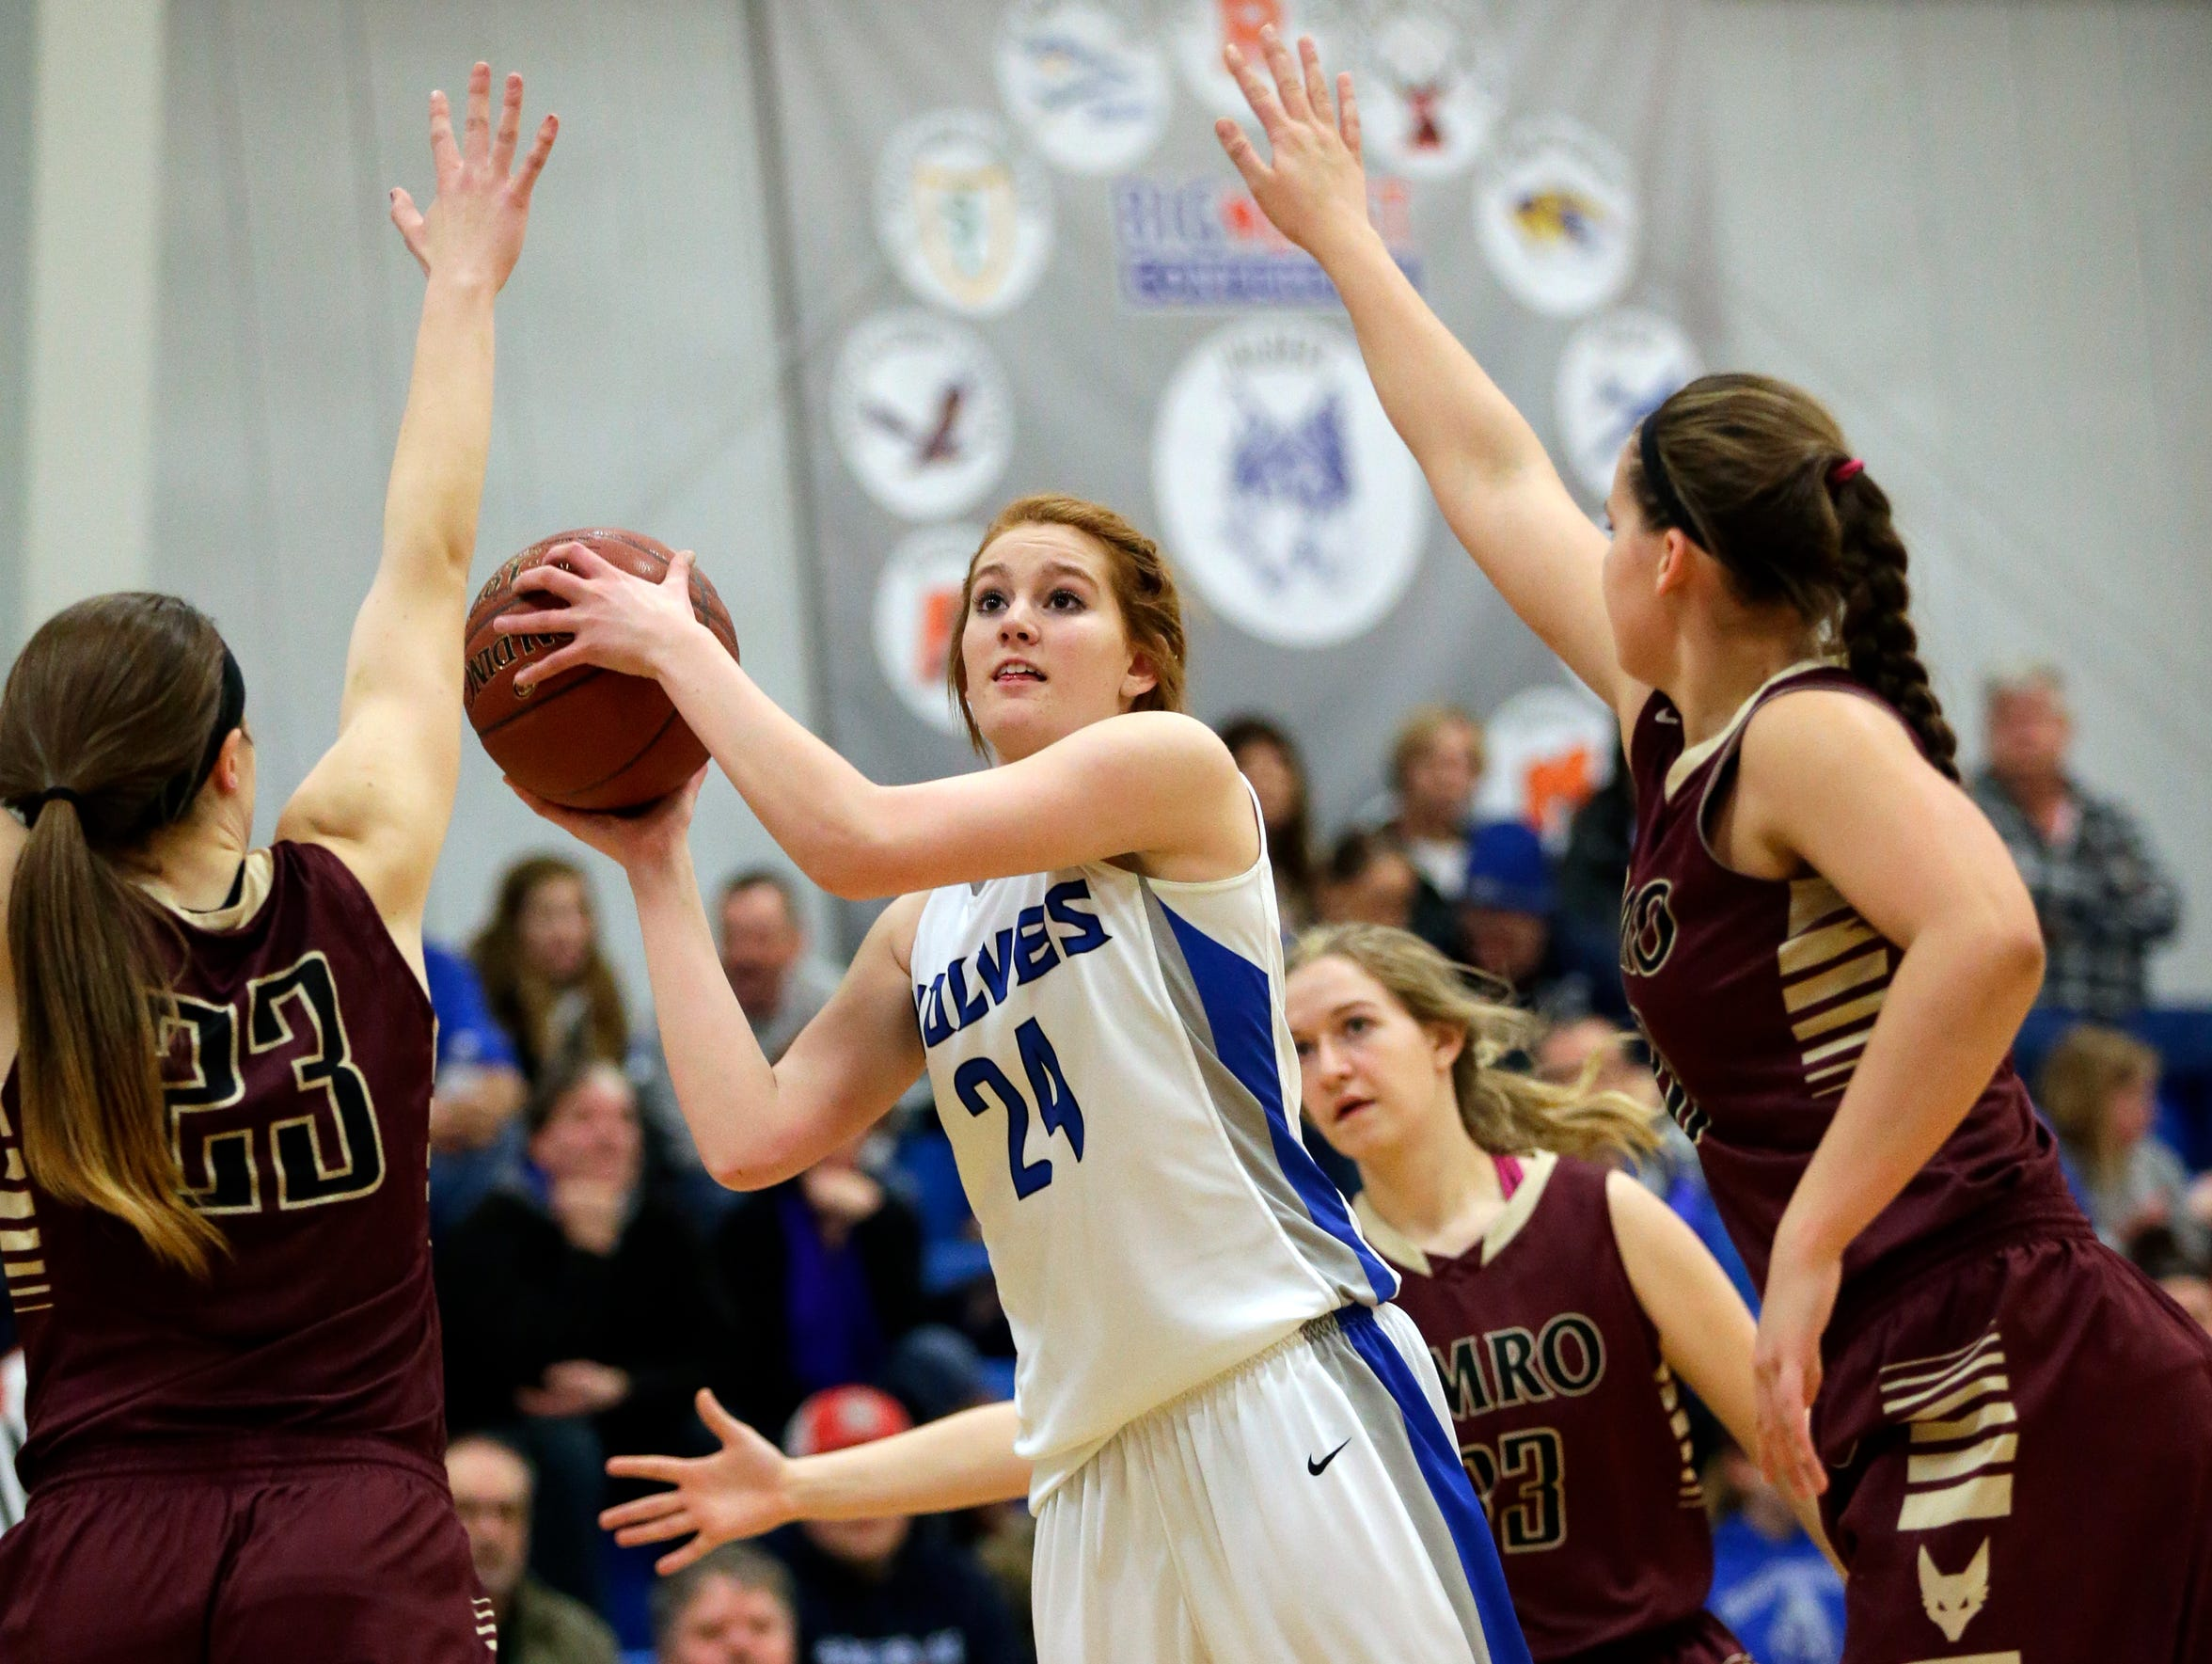 Hilbert High School's April Gehl (24) returned to the